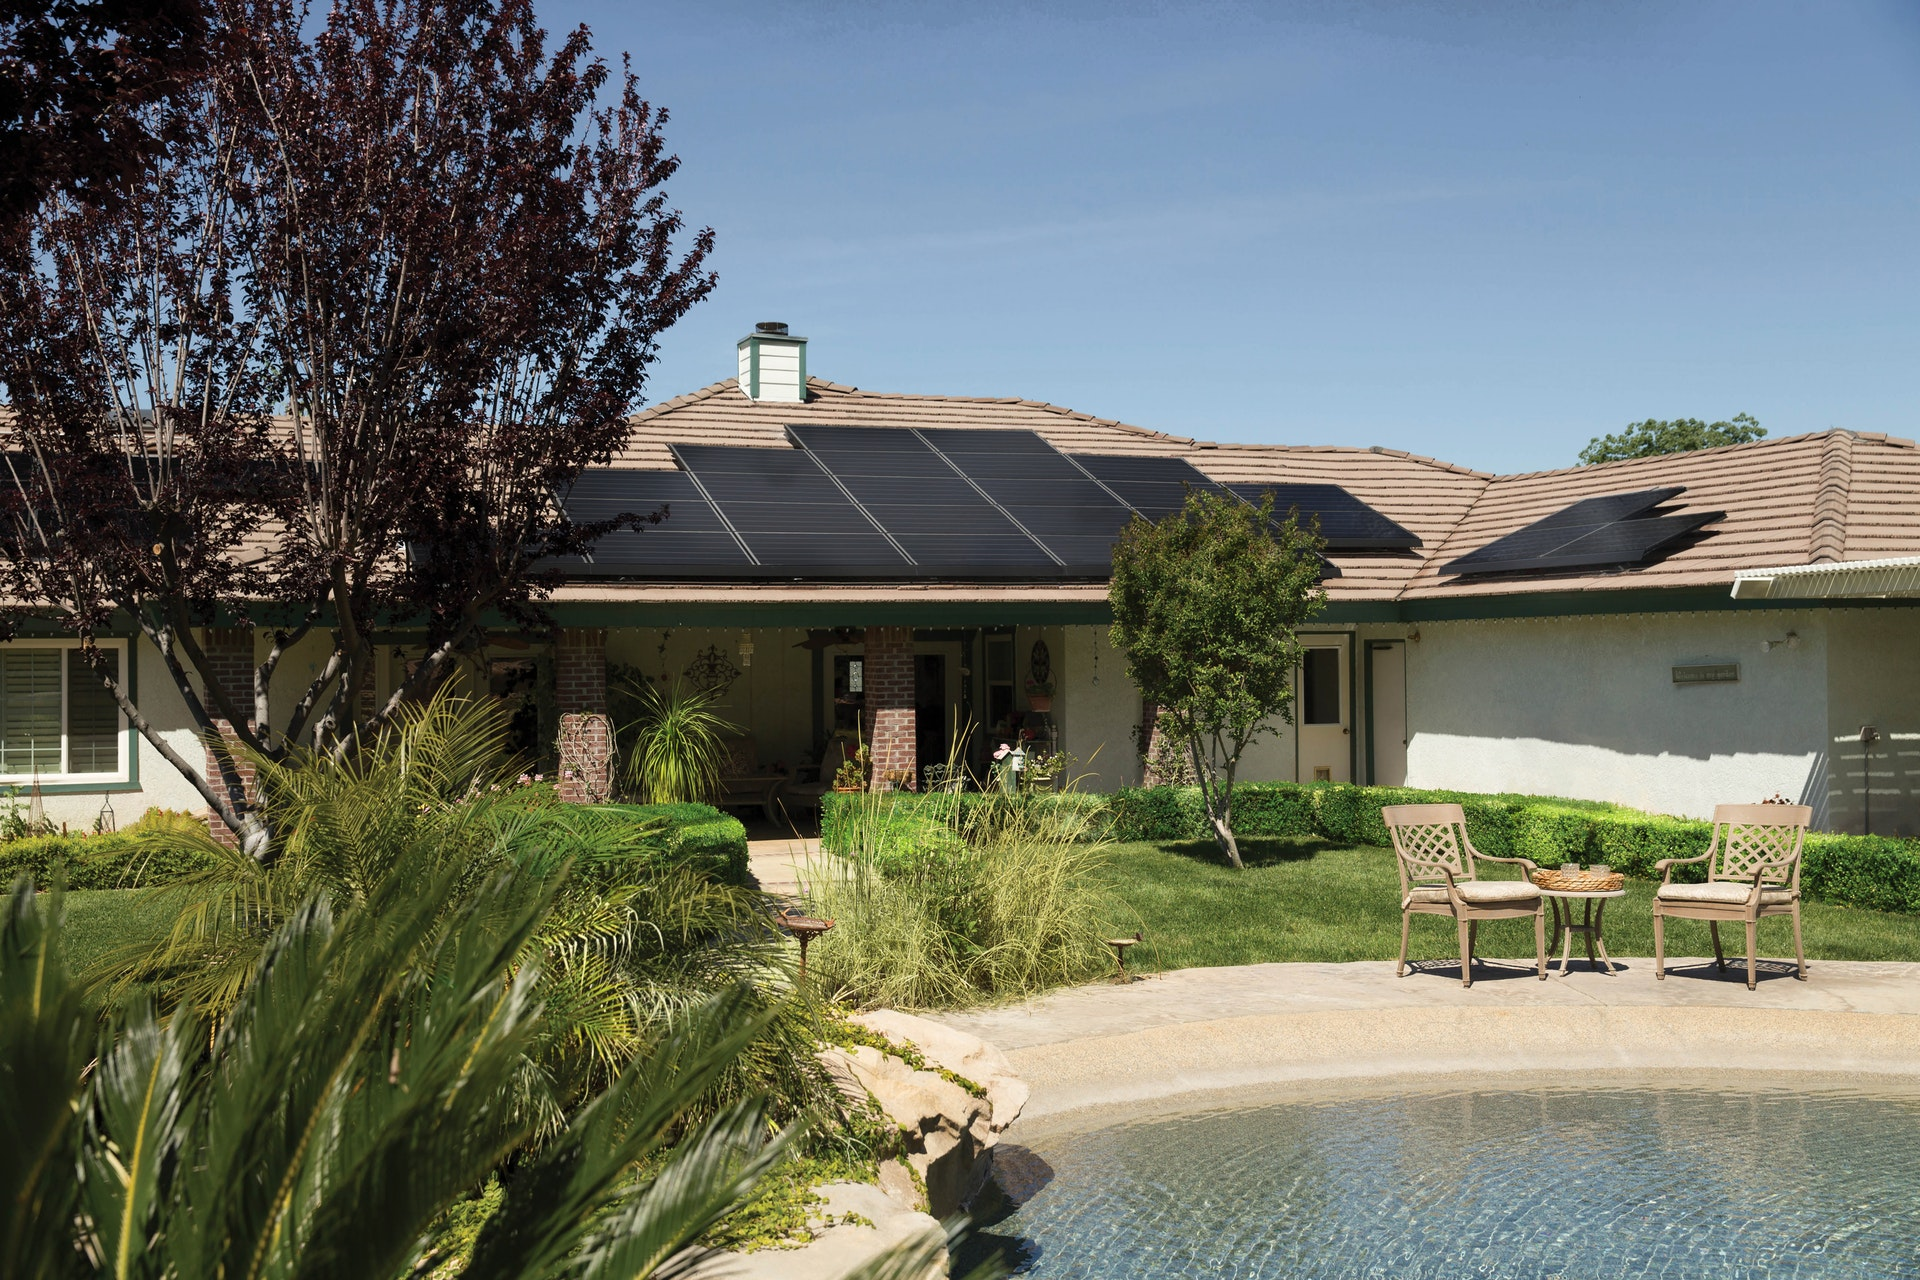 Black solar panels on roof of southern california home